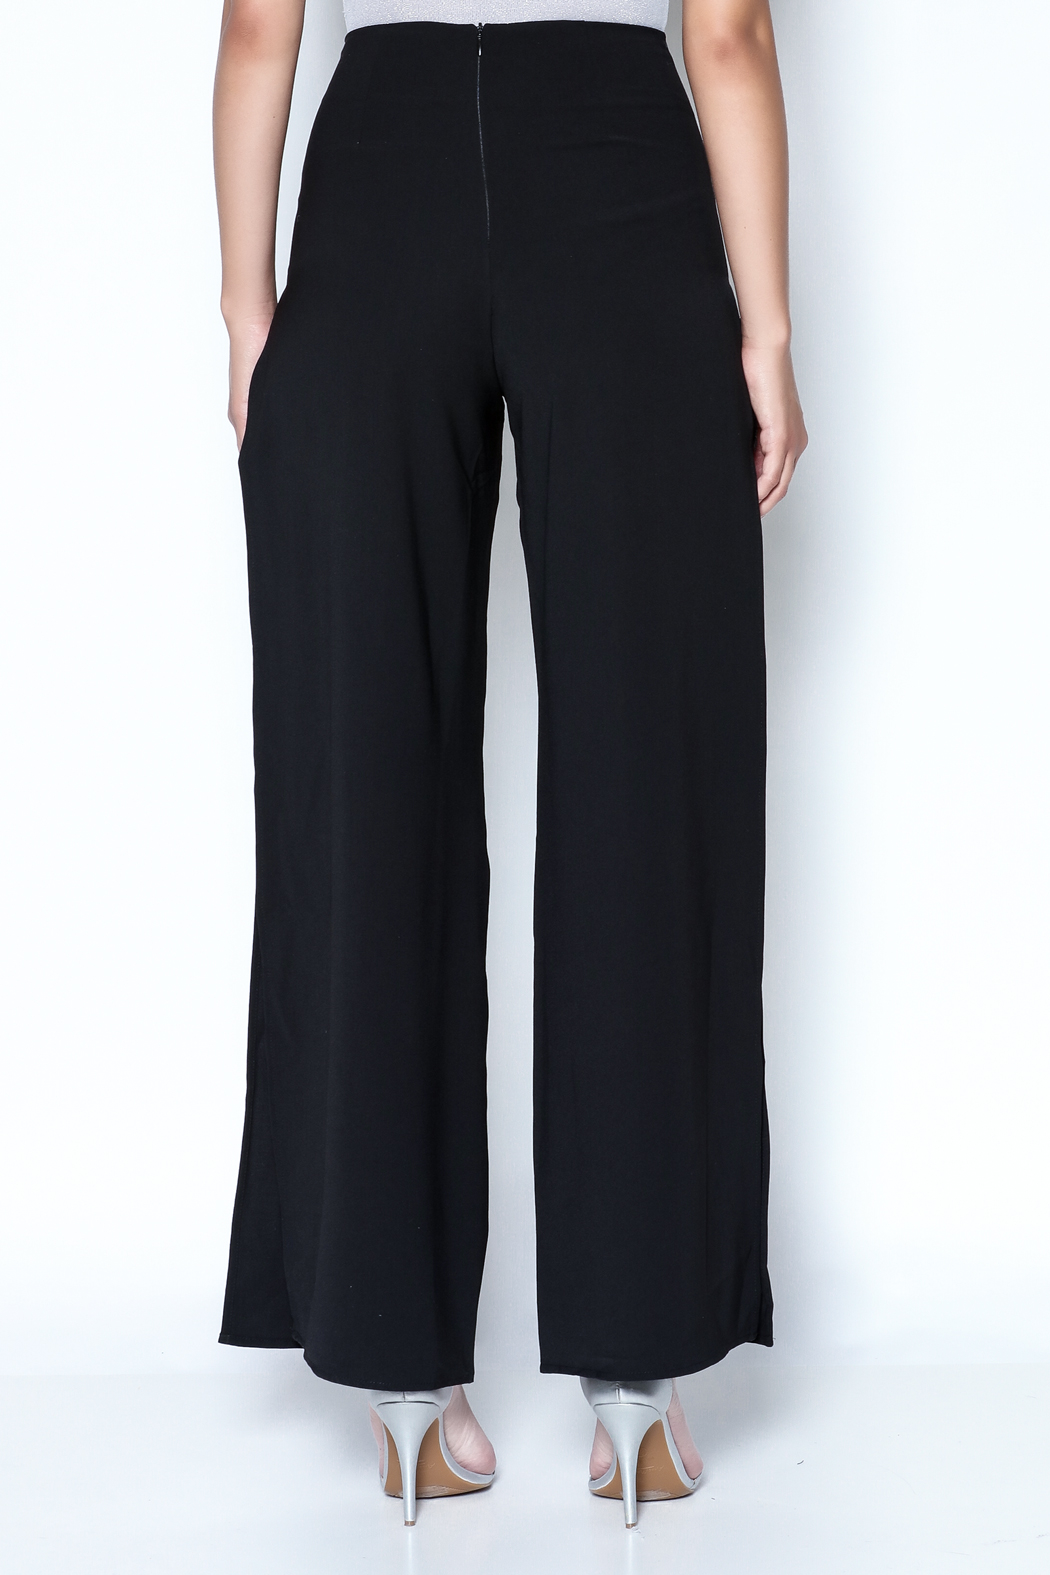 Do-Be Lace Insert Pants - Back Cropped Image